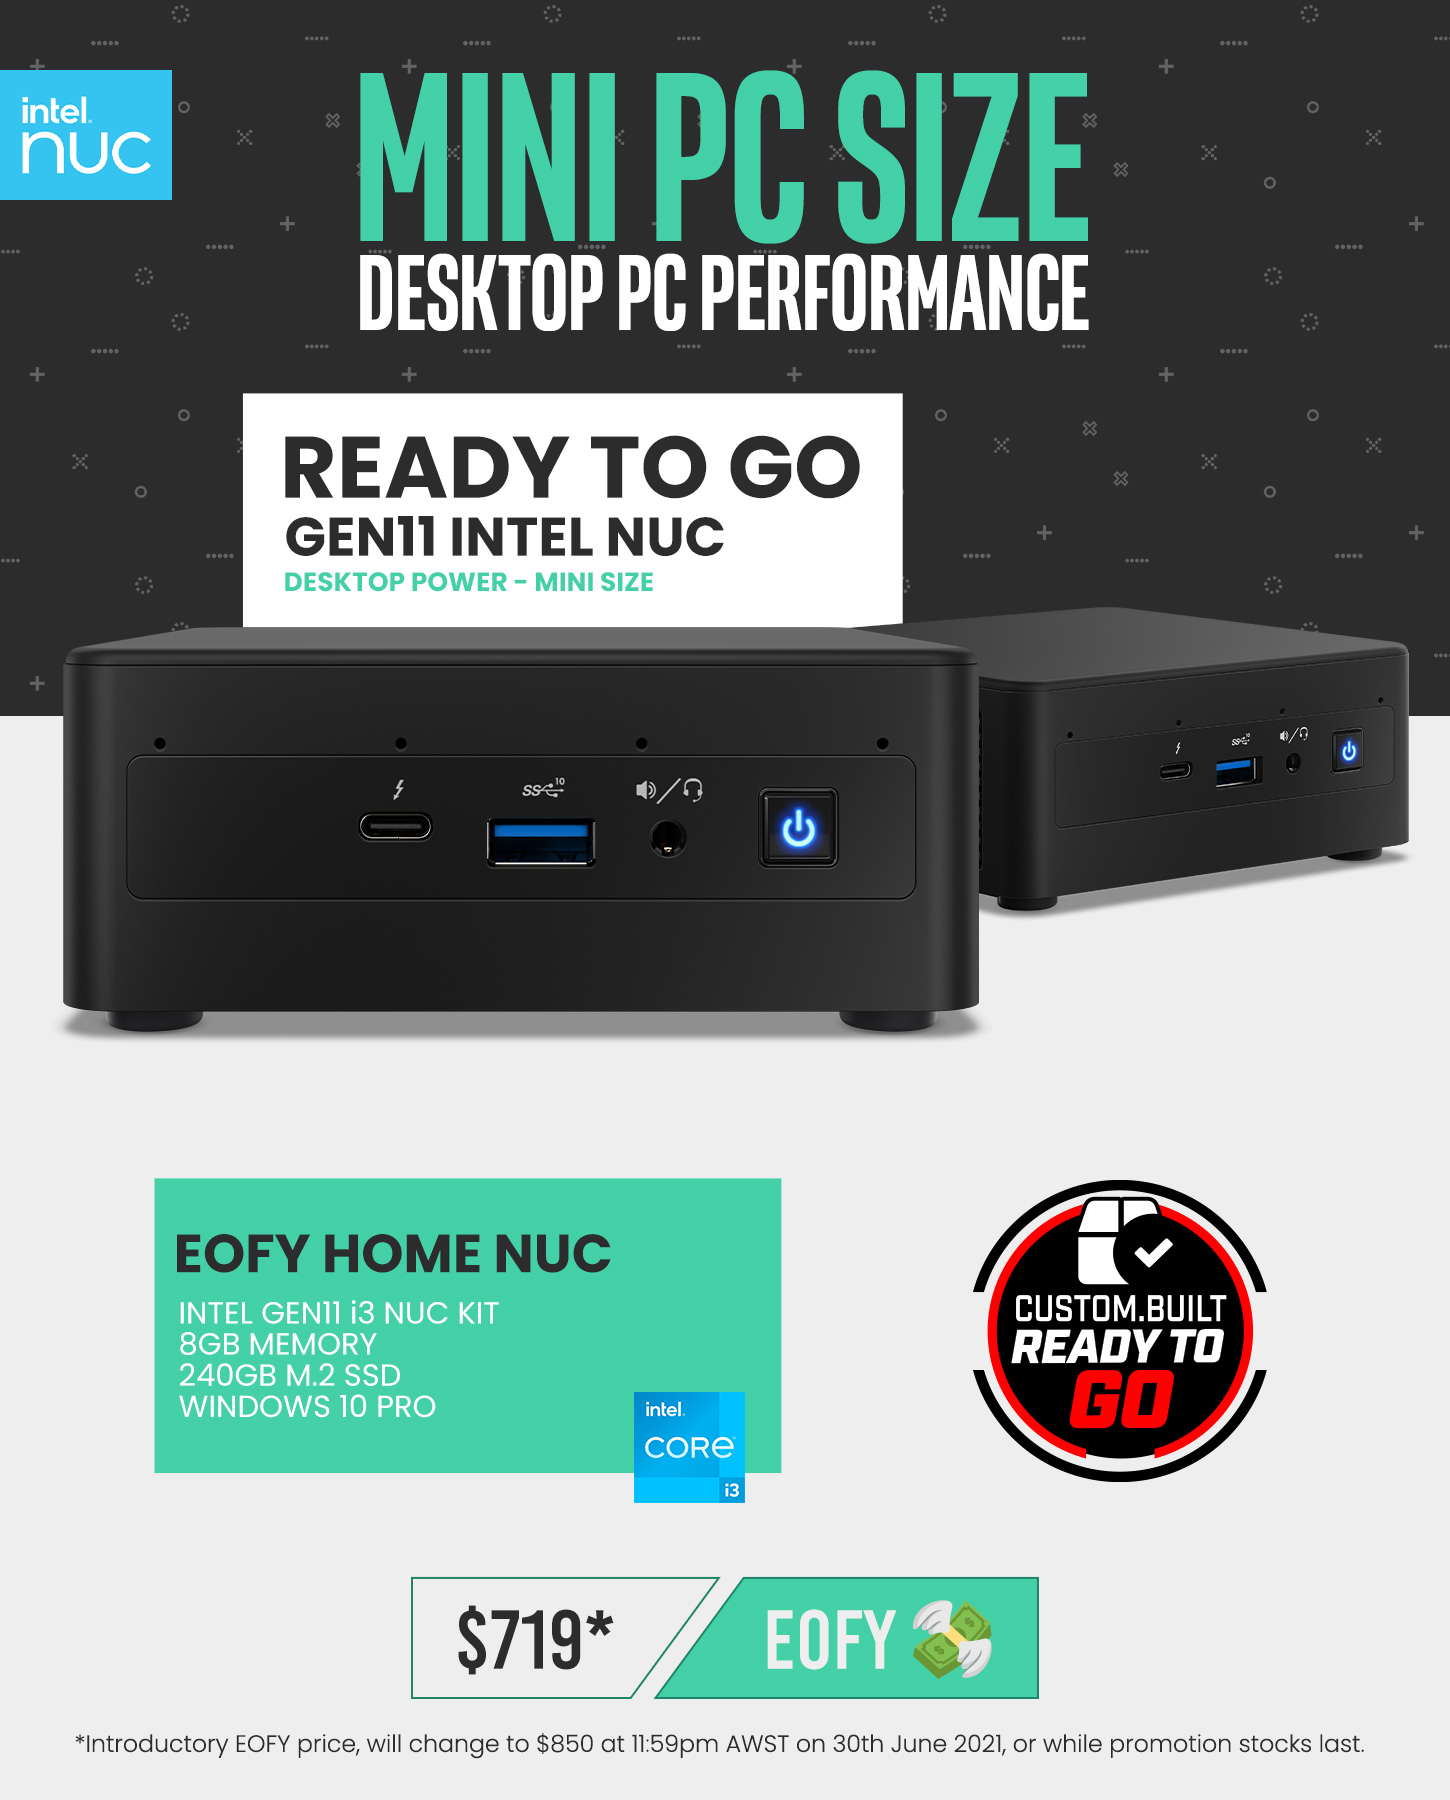 A large marketing image providing additional information about the product EOFY Home 11th Gen i3 NUC Prebuilt Mini PC - Additional alt info not provided